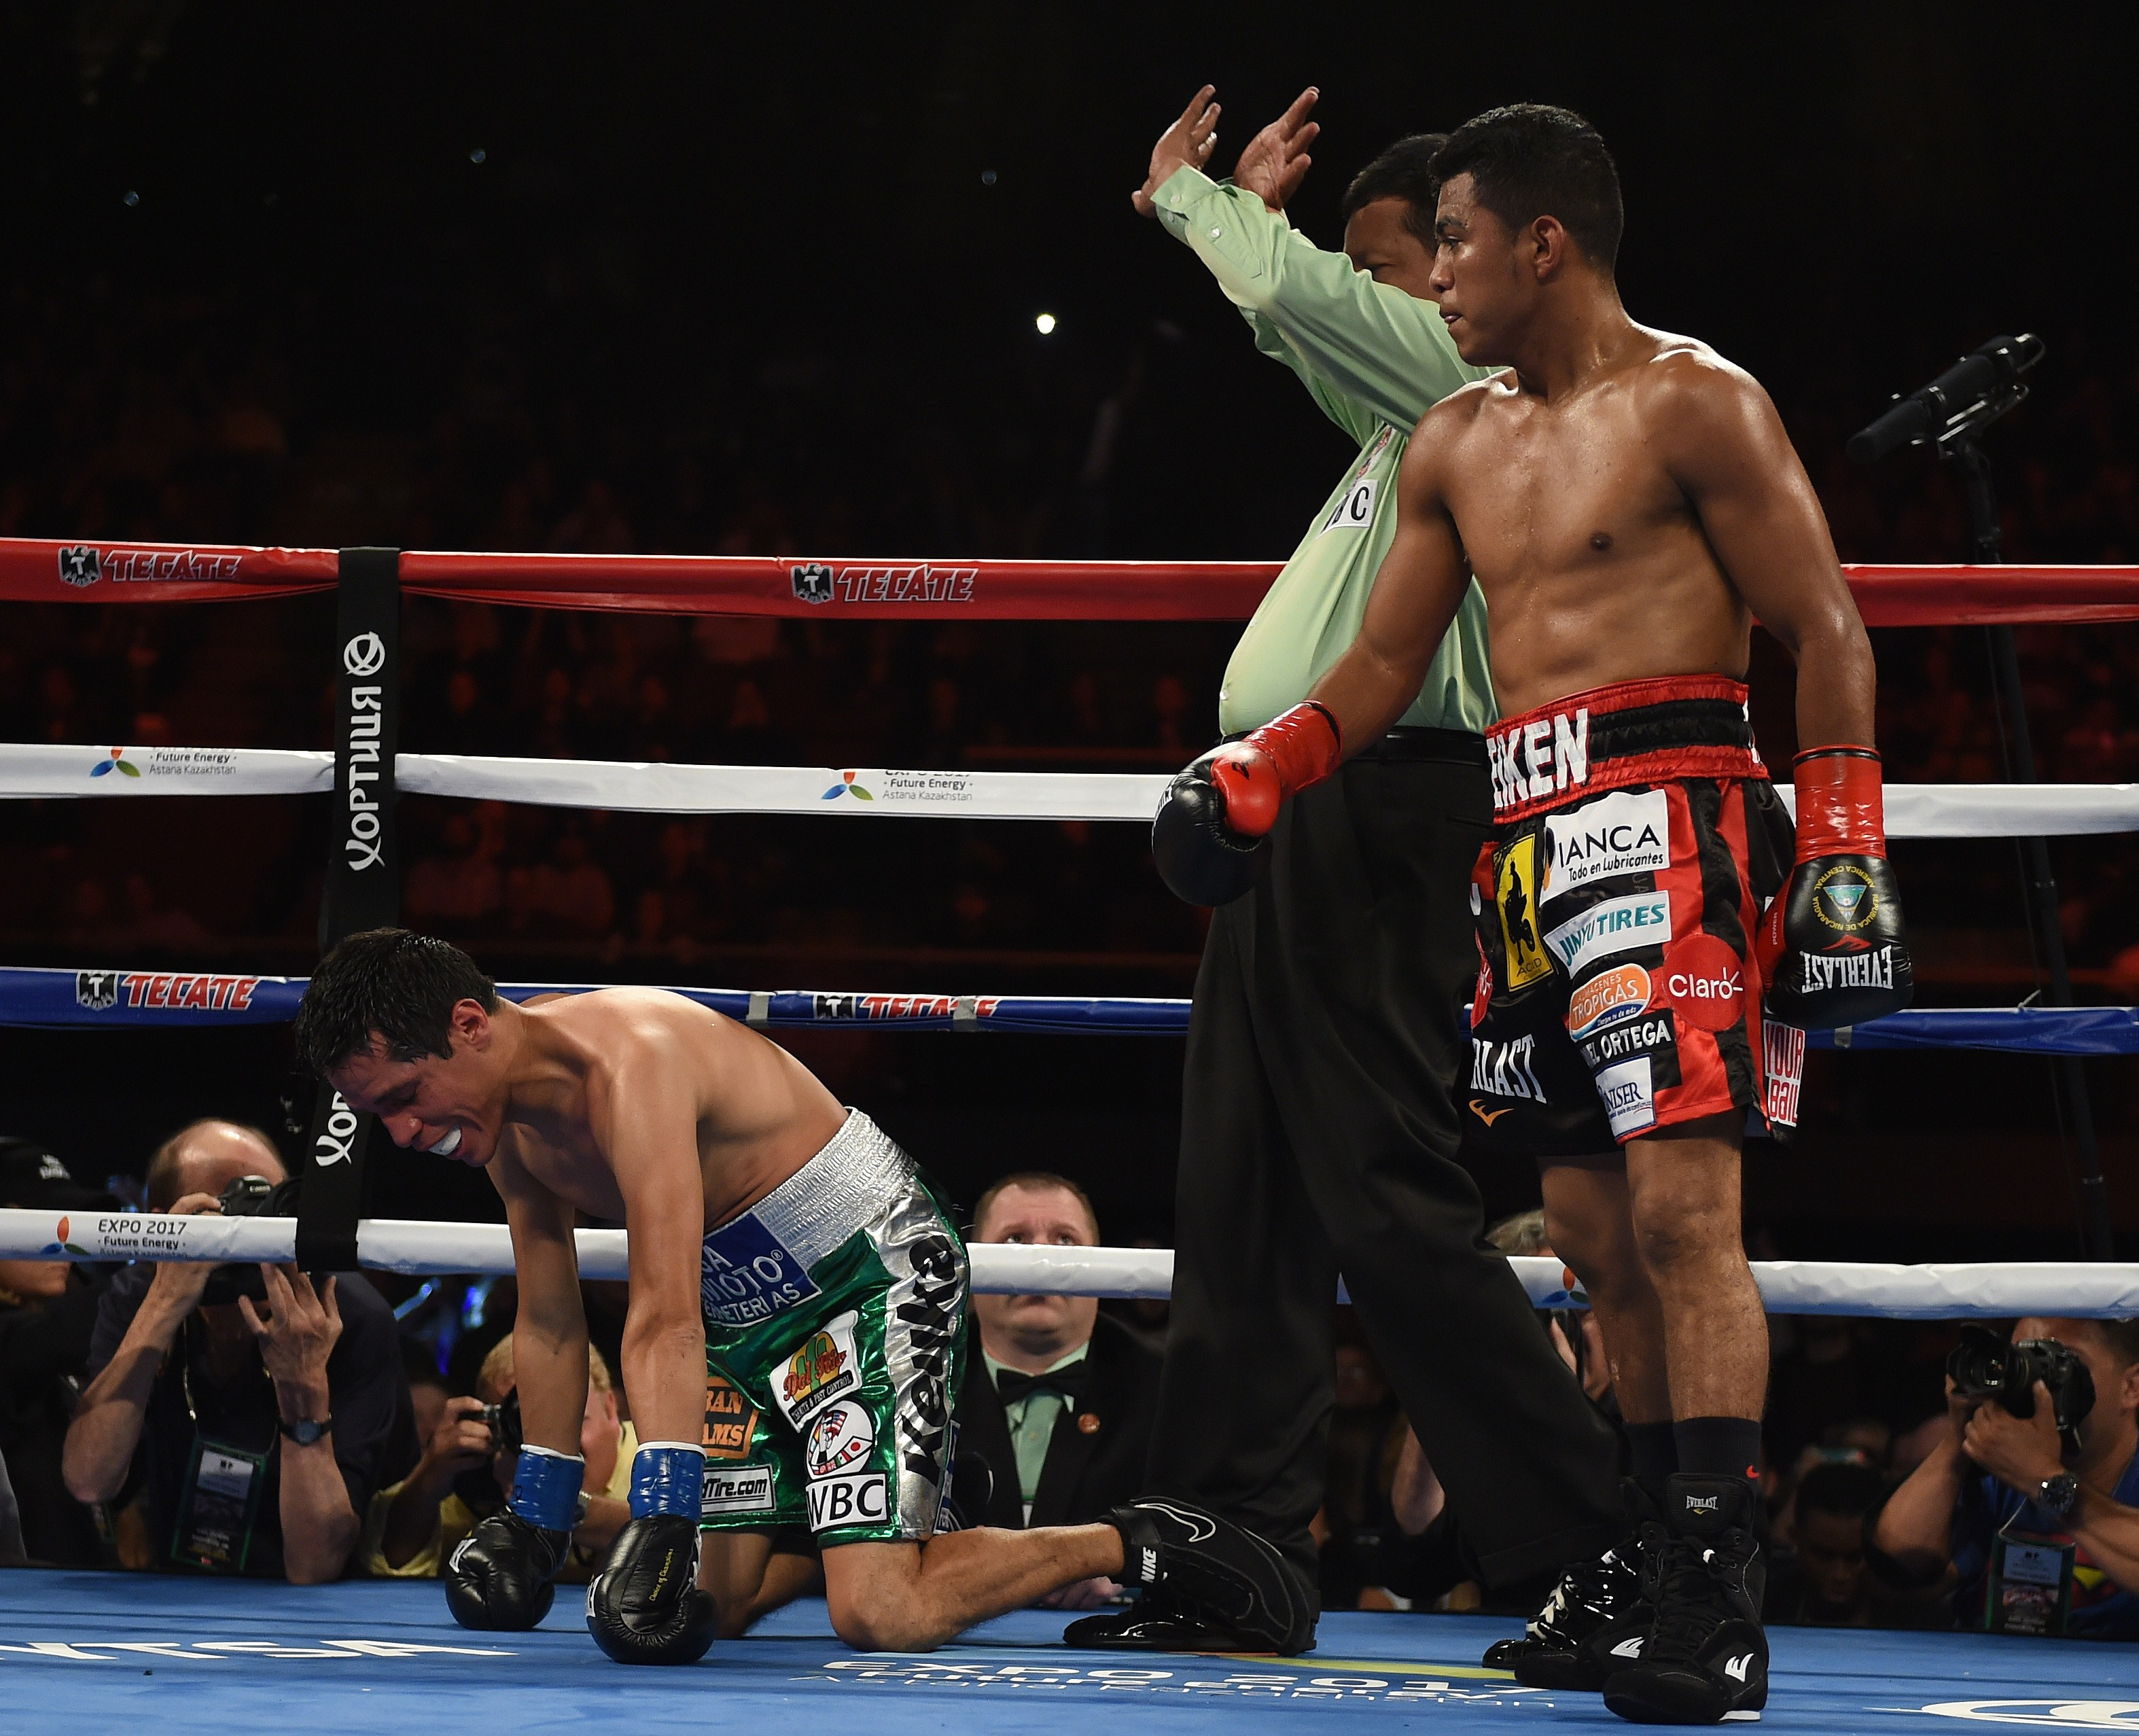 Roman Gonzalez  knocks out Edgar Sosa n the second round of their WBC Flyweight World Championship bout at the Forum Arena in Los Angeles, California on May 16, 2015.  (Getty)